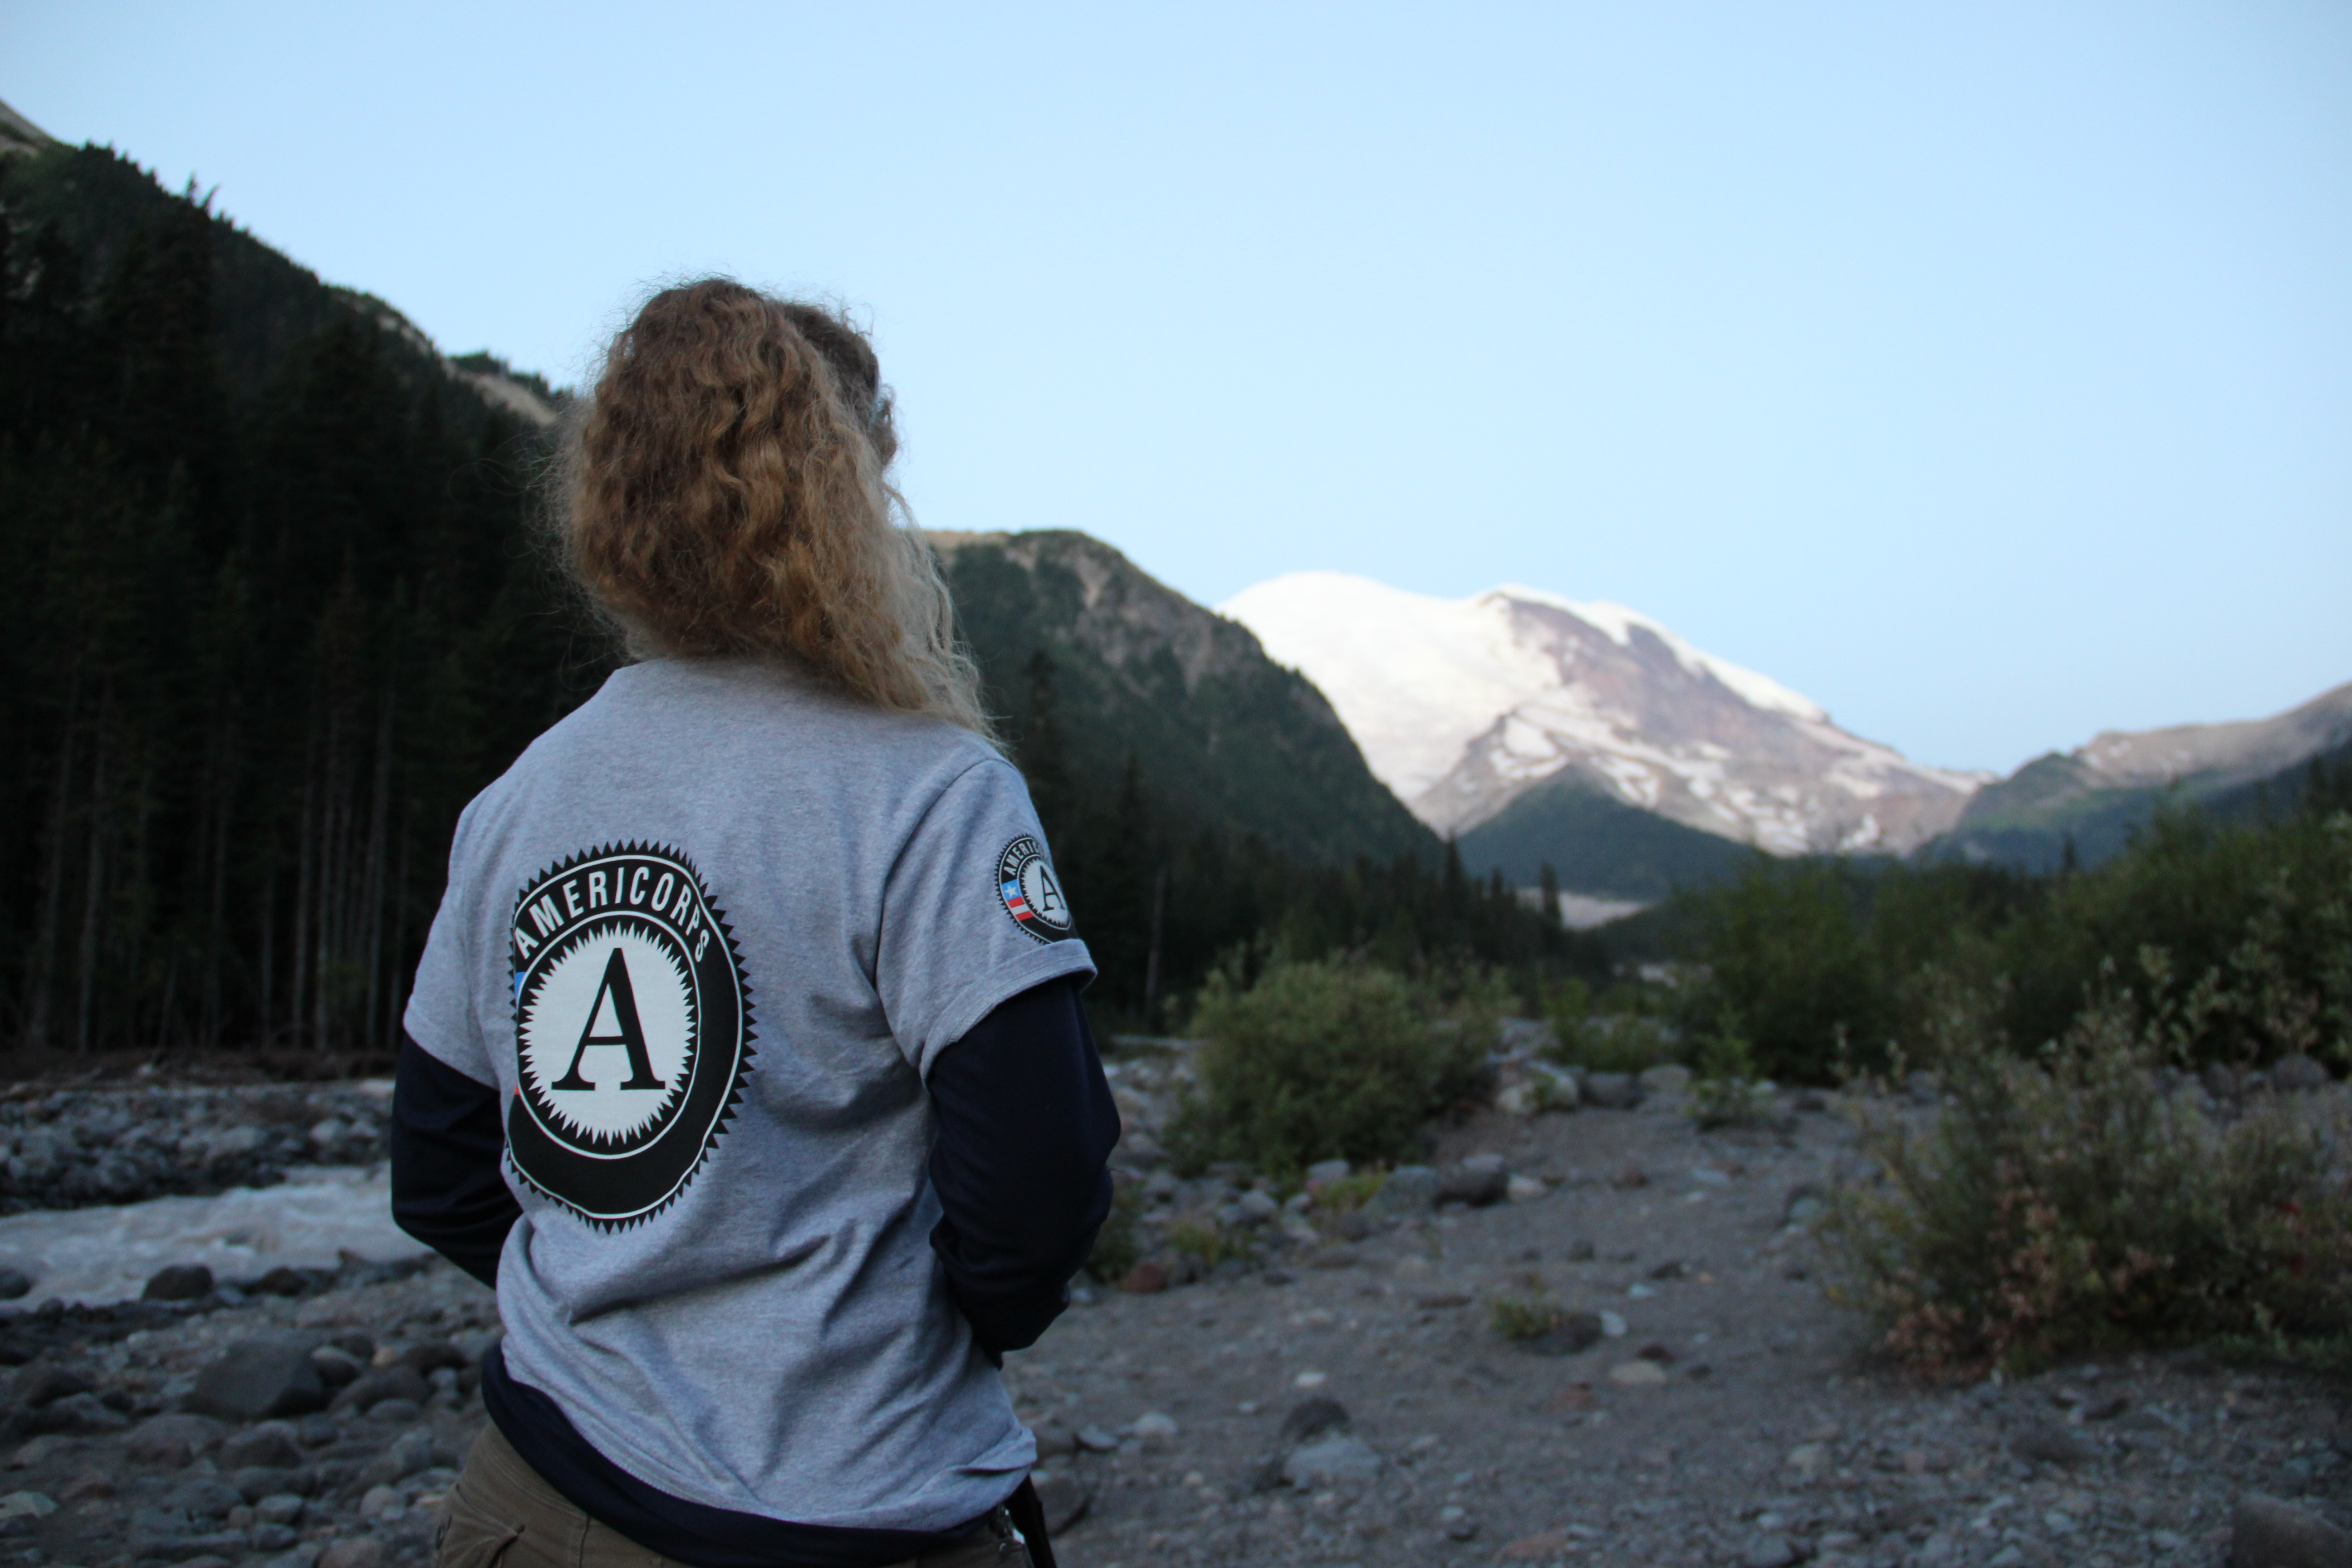 A person stands in a rocky wash, wearing a tan shirt with an AmeriCorps logo looking at a mountain, at dusk